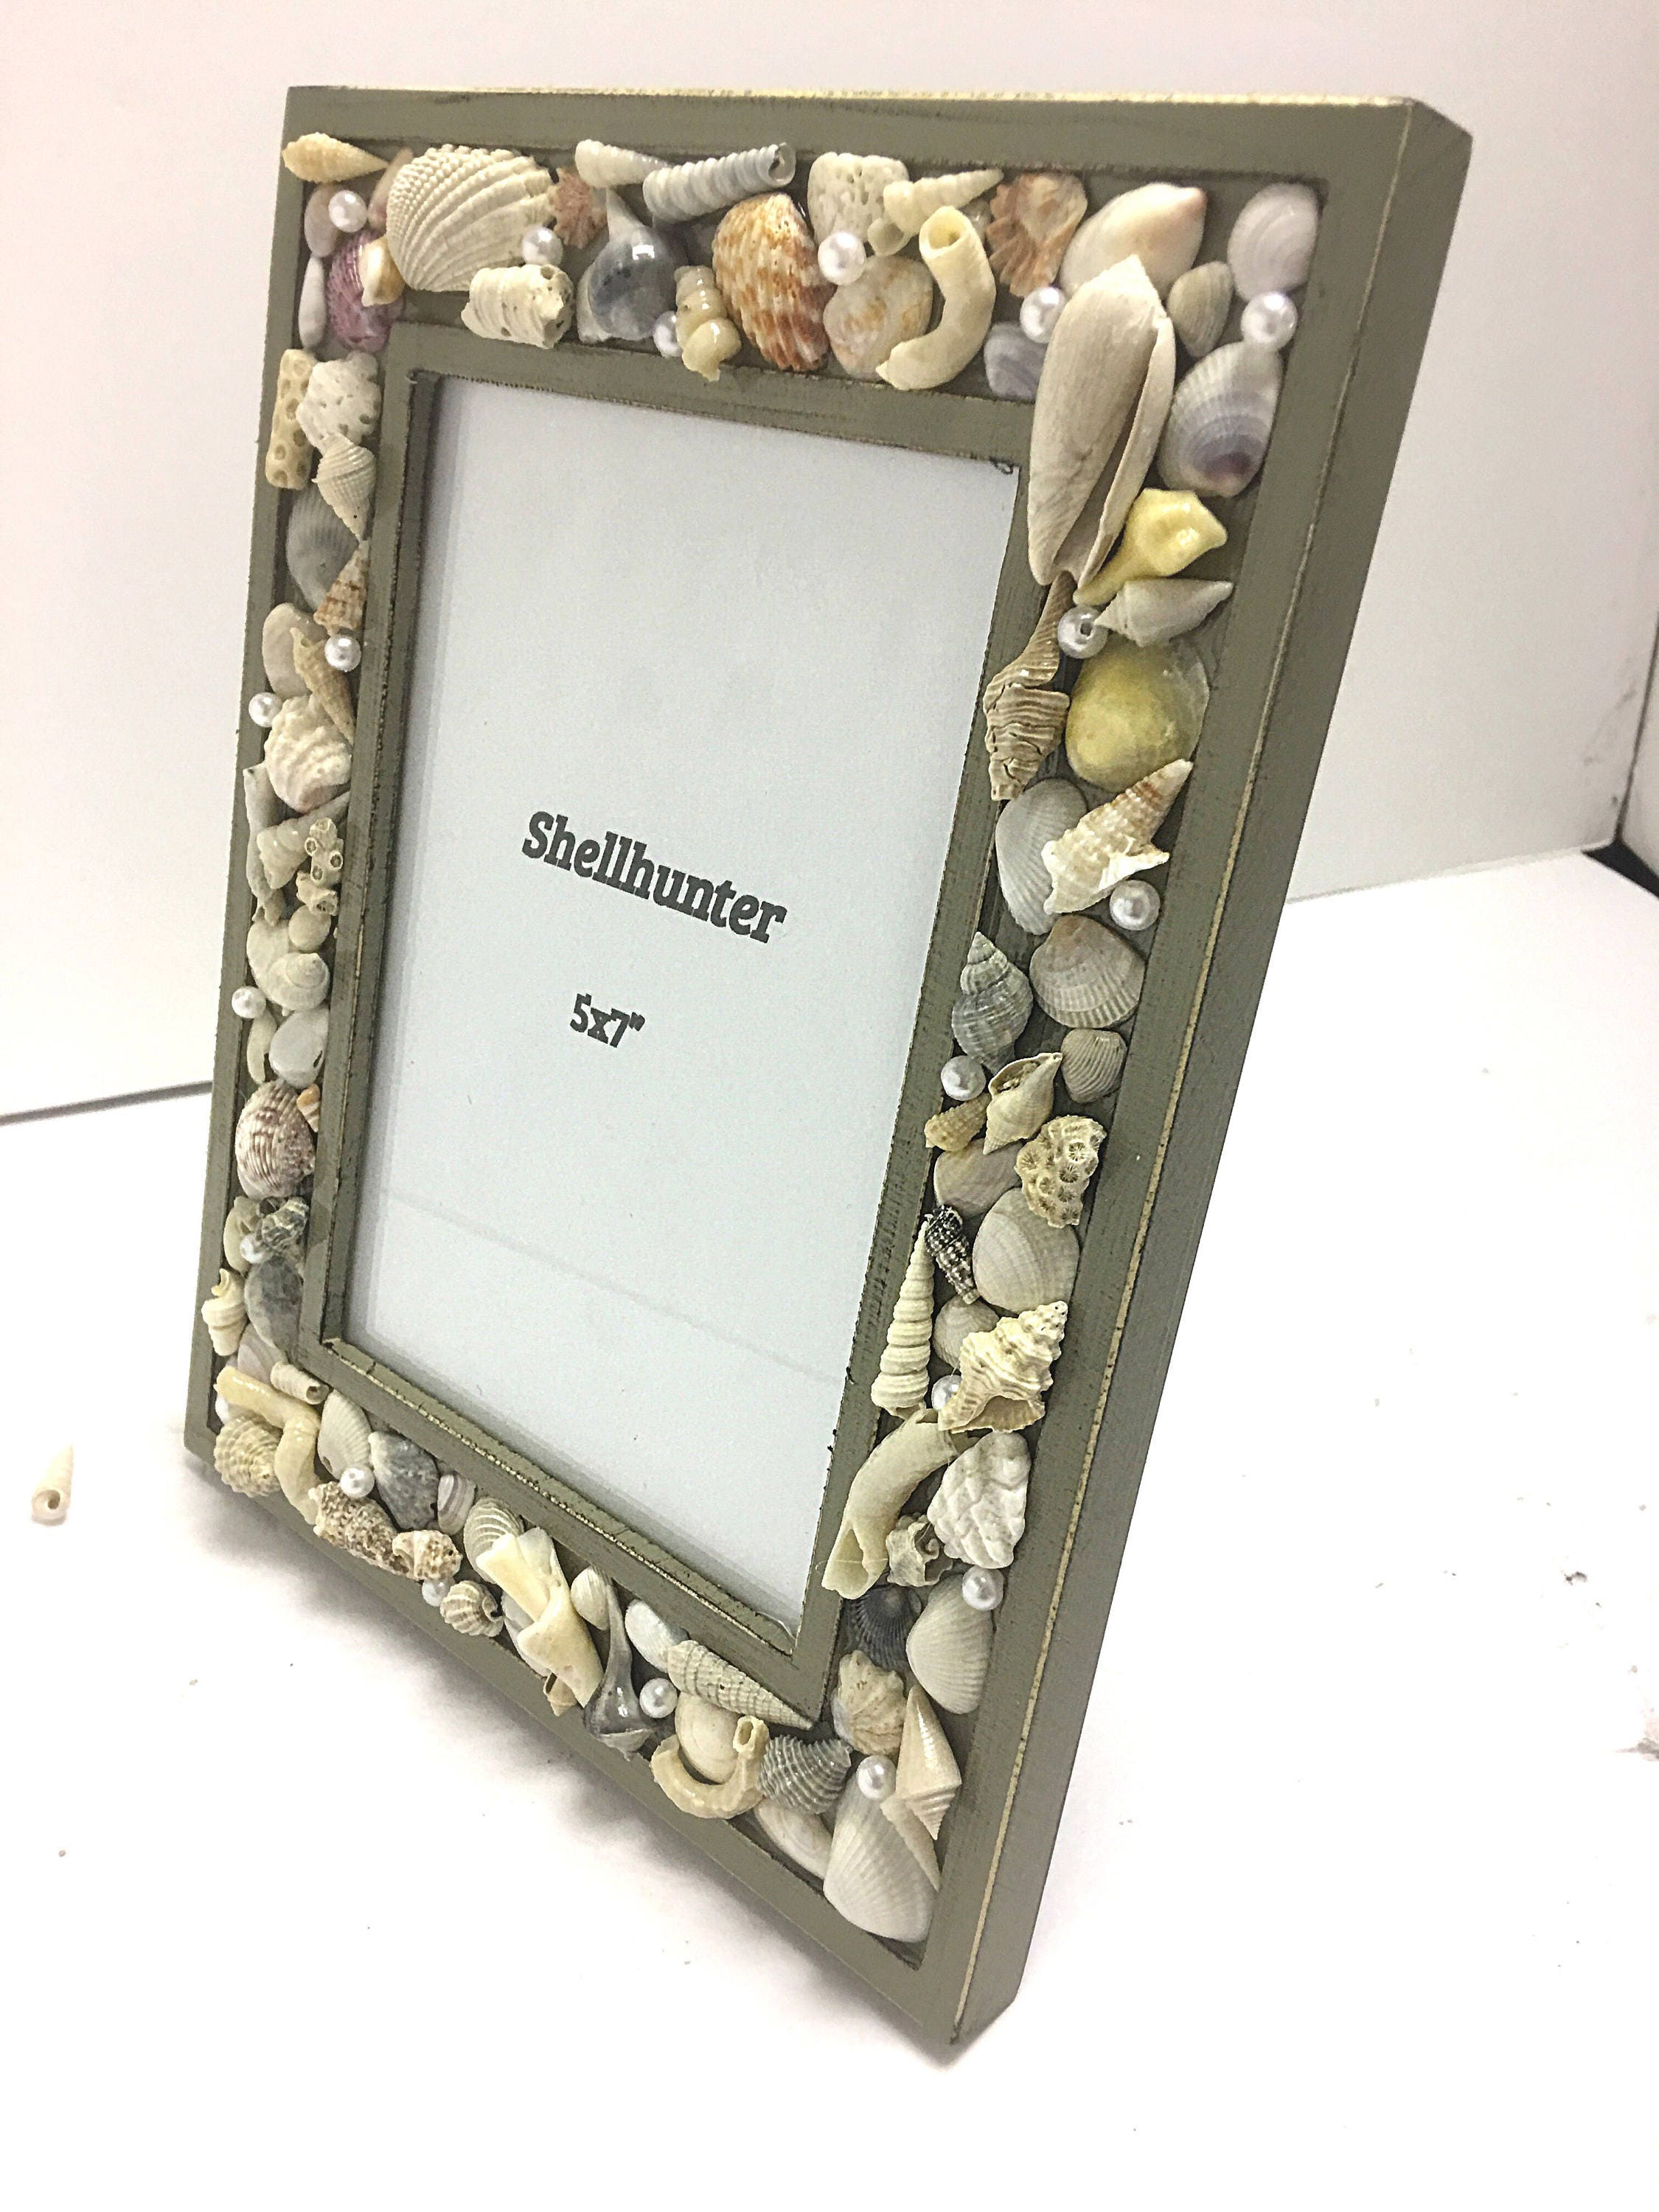 Beach frame 5 by 7 photo frame in olive green with seashells and gallery photo gallery photo jeuxipadfo Image collections